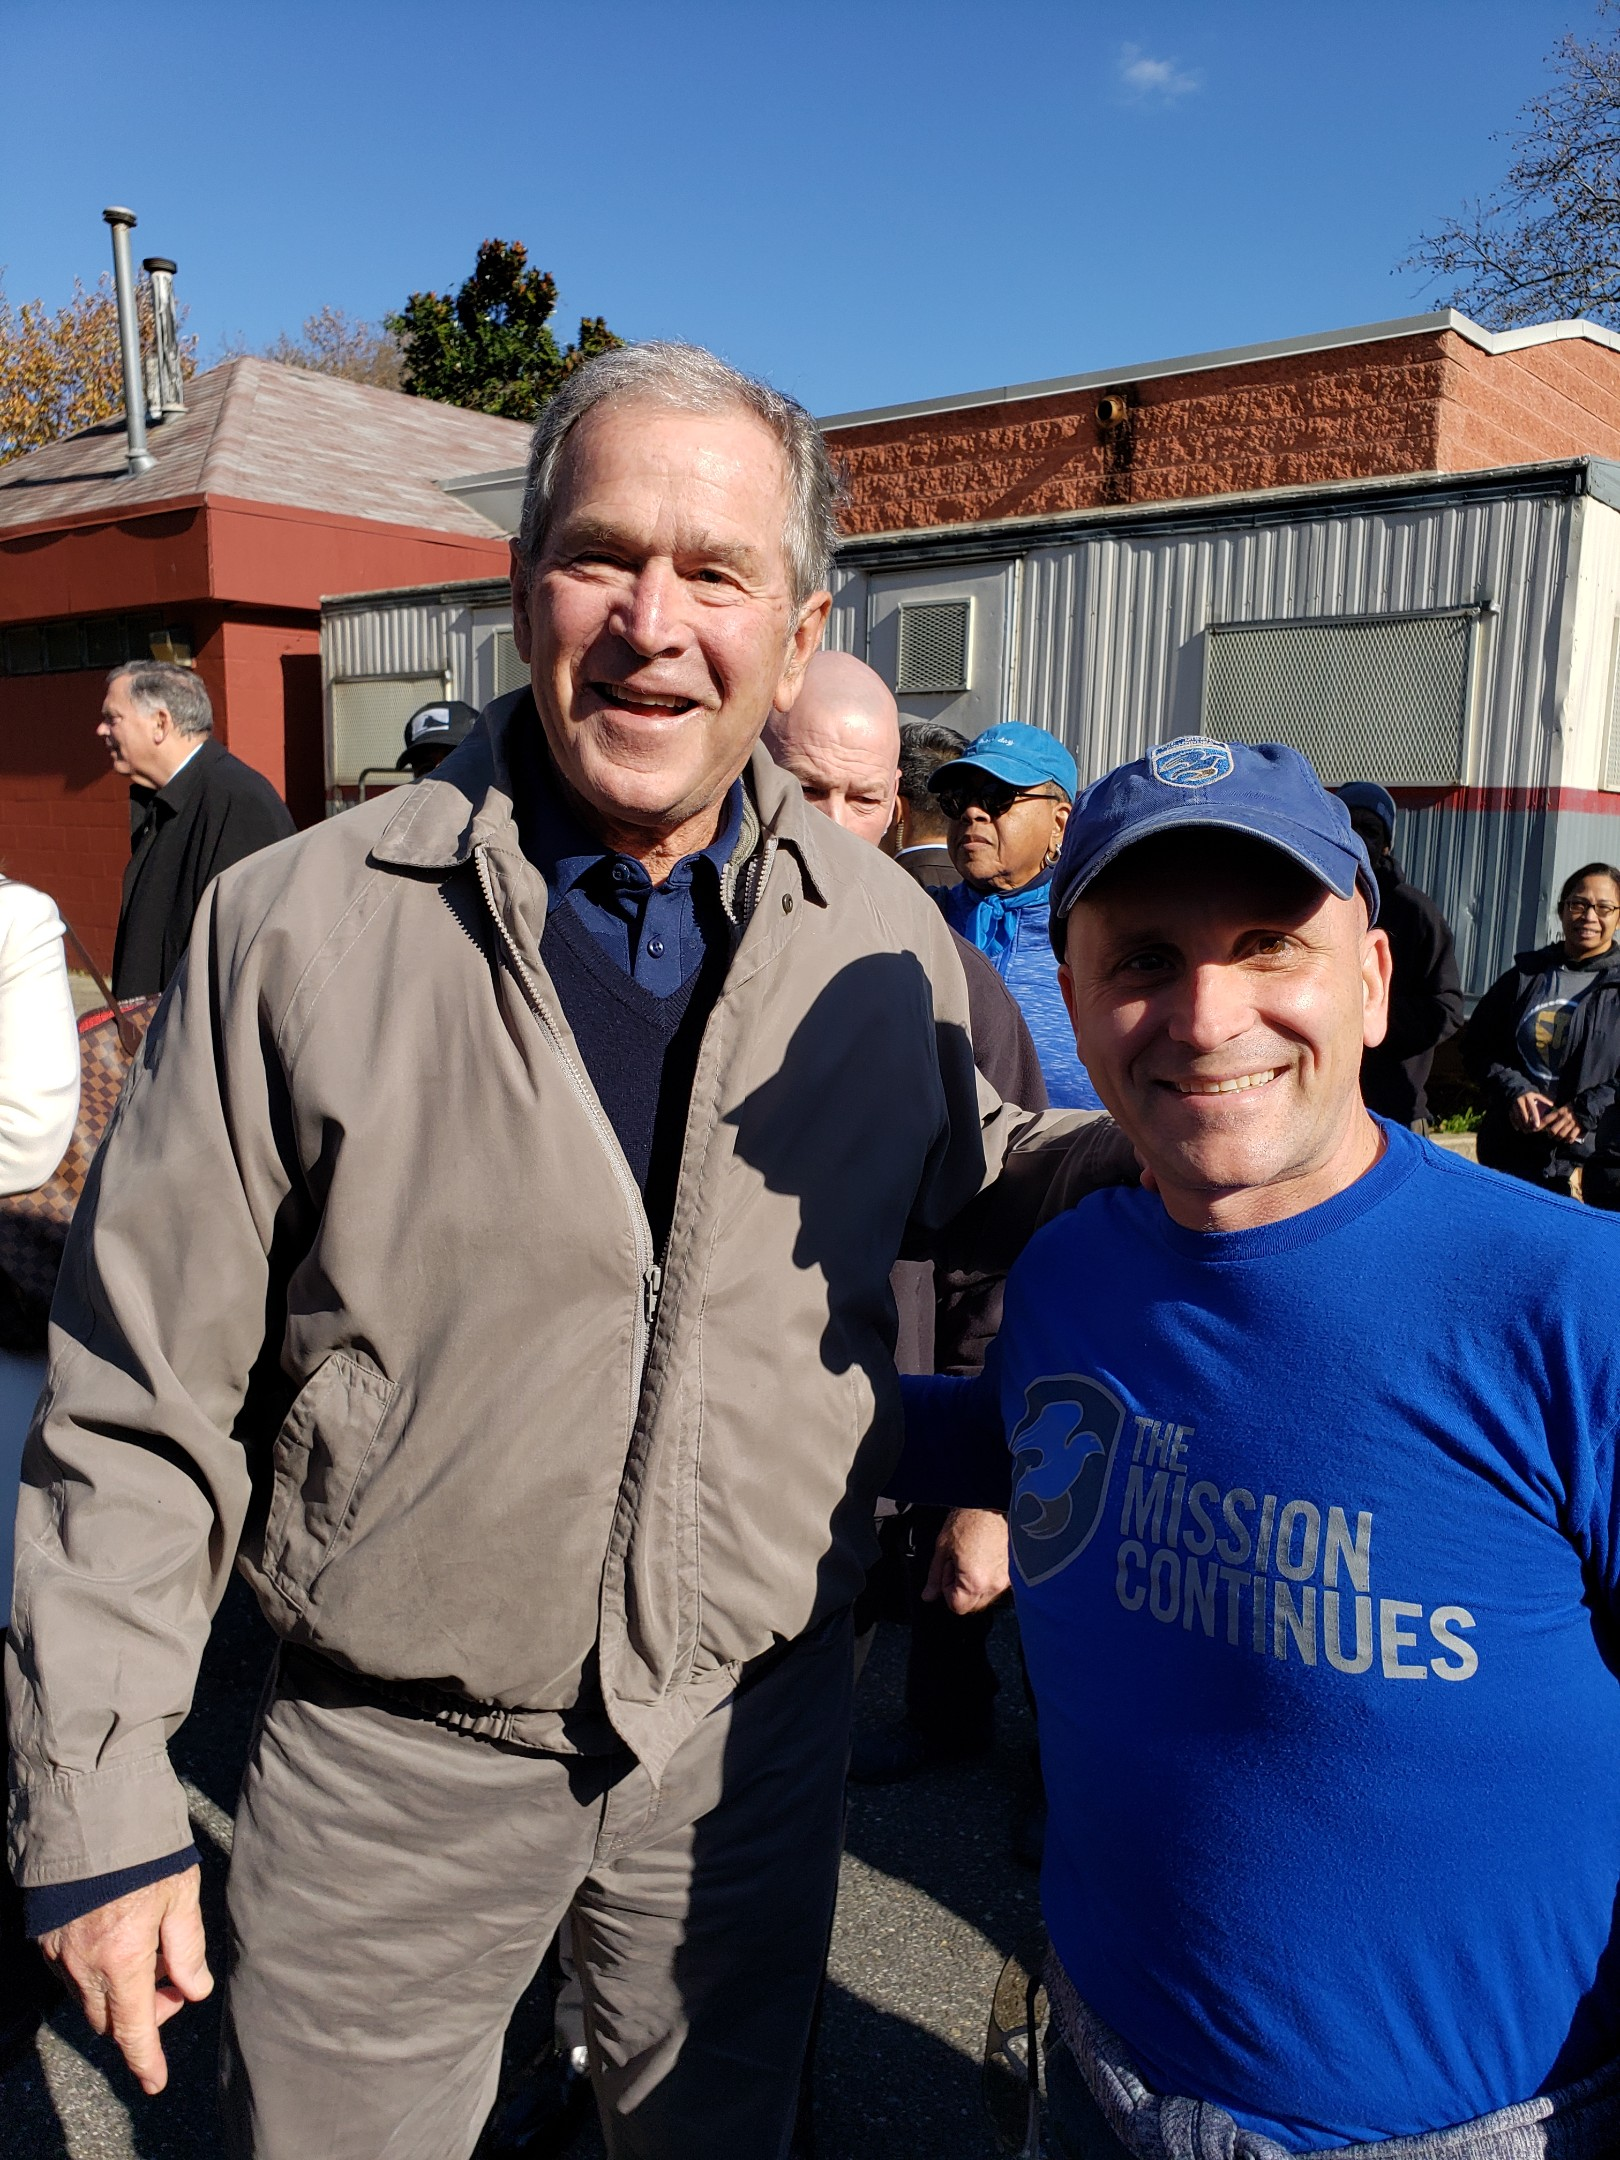 Former President George W. Bush dropped by a service project in Philadelphia, and poses for a photo with Platoon Leader Anthony Fedele.